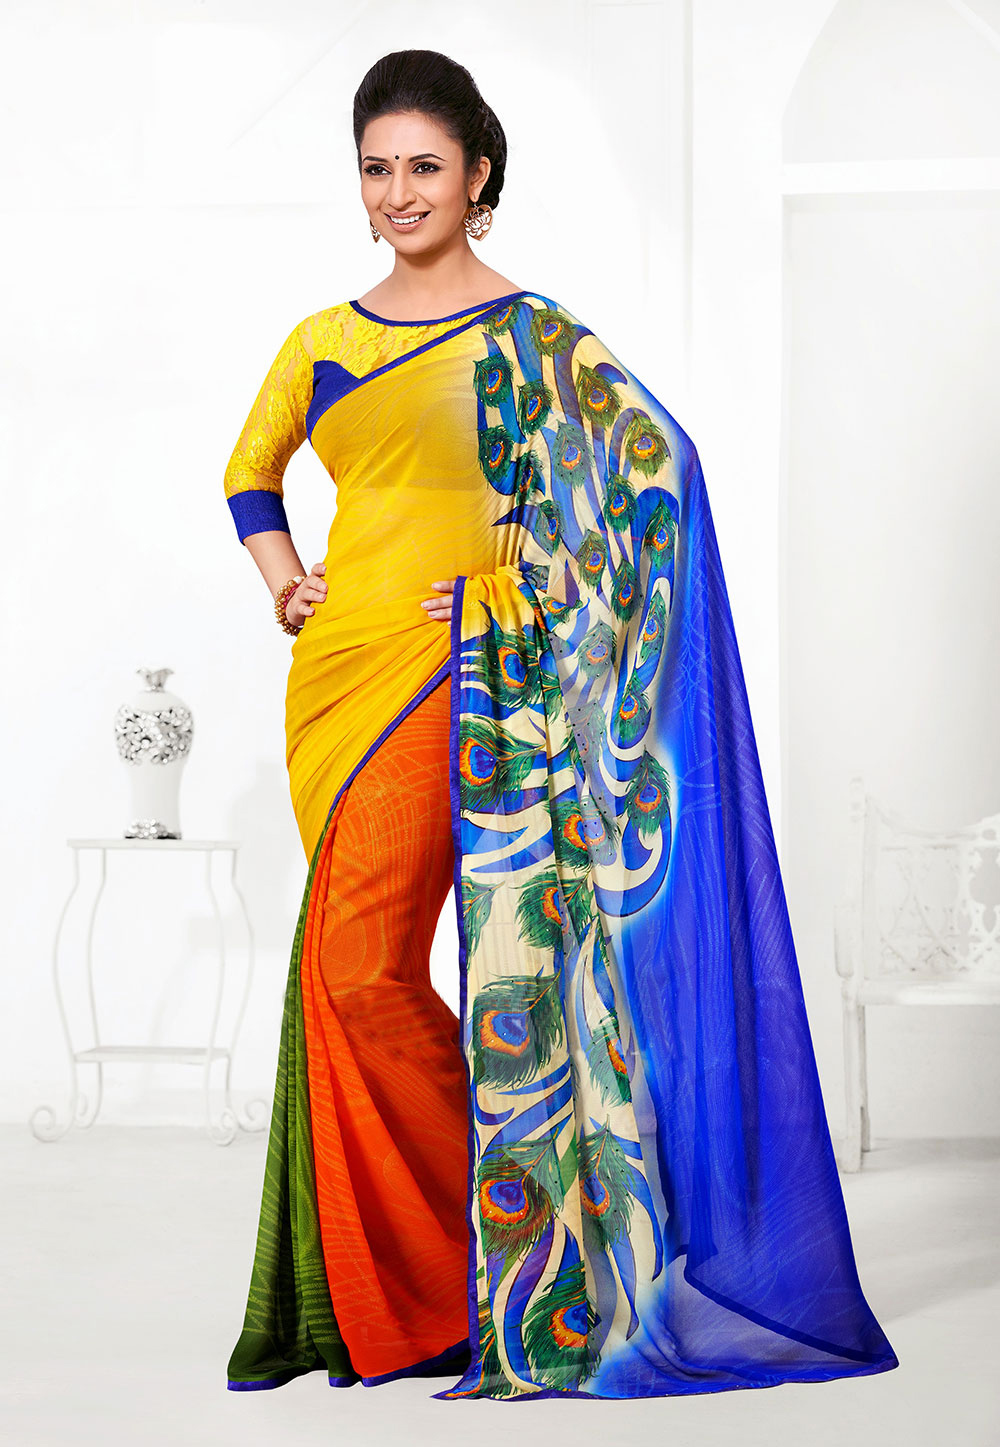 A Peacock print saree in Yellow, Orange, Green and Blue. (Image: Utsavfashion.com)